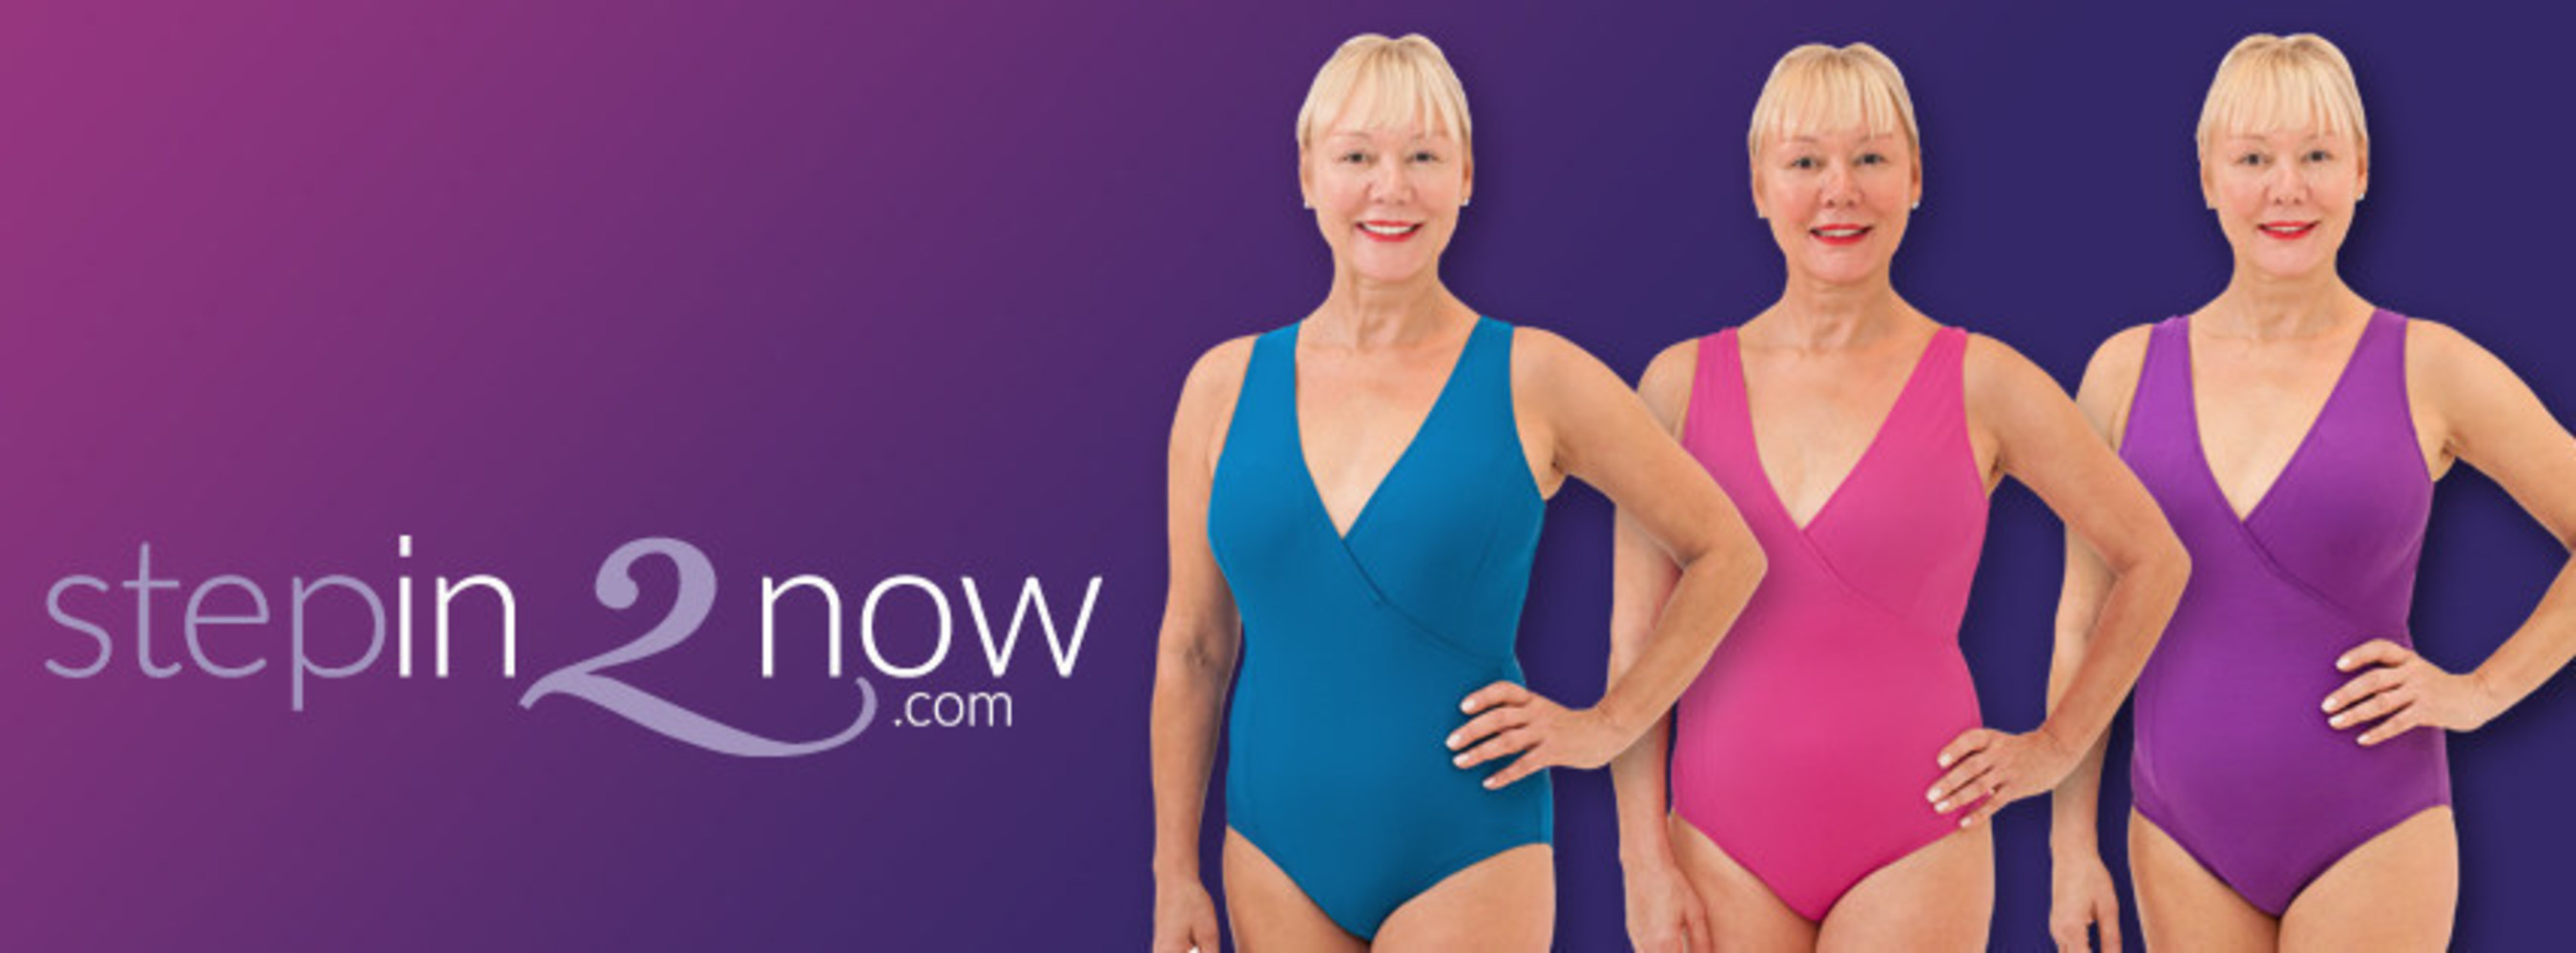 c5e860203365e Innovative Swimsuit Making Big Splash  Unique Design Offers Simple ...